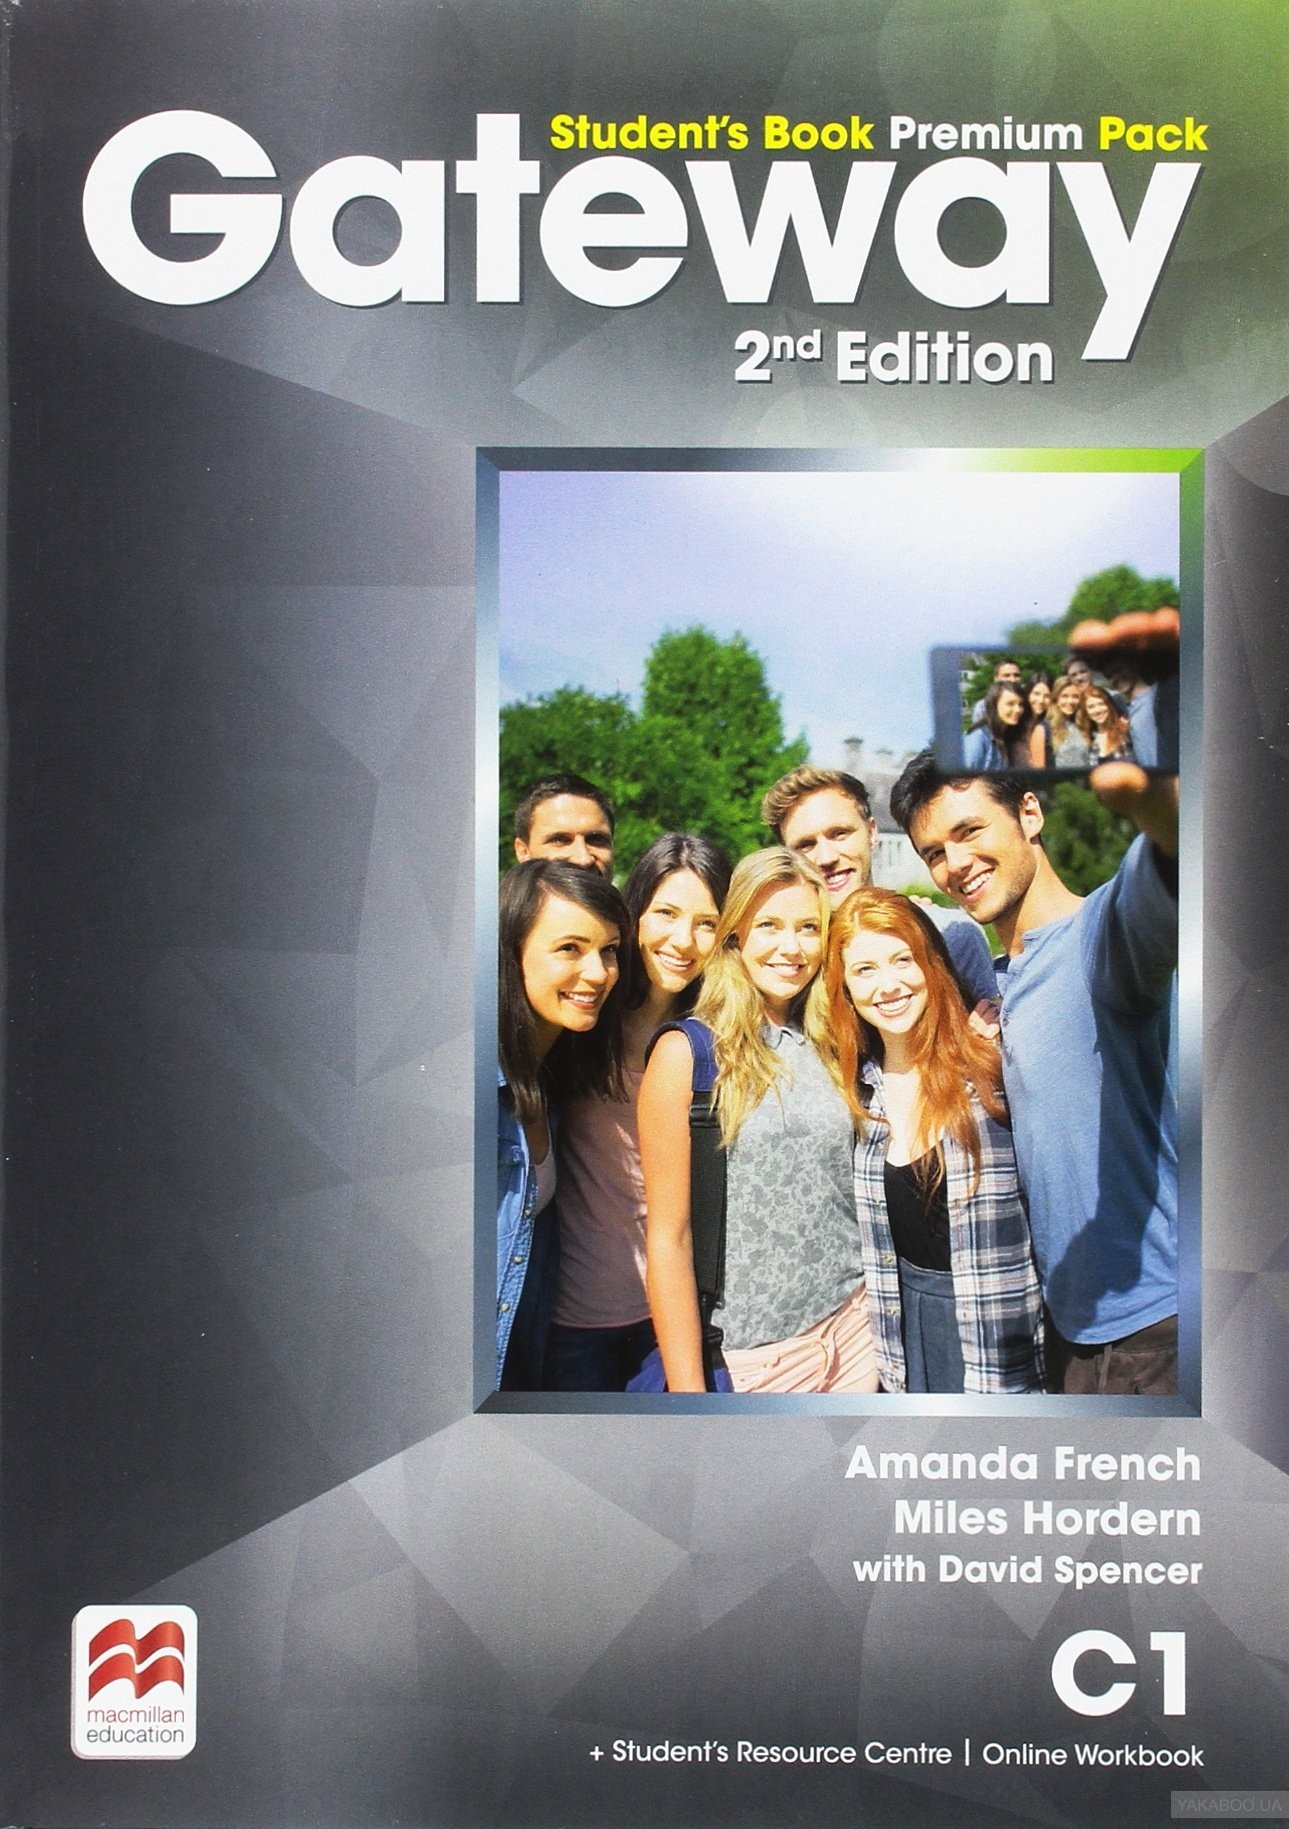 Gateway c1 student's book premium pack